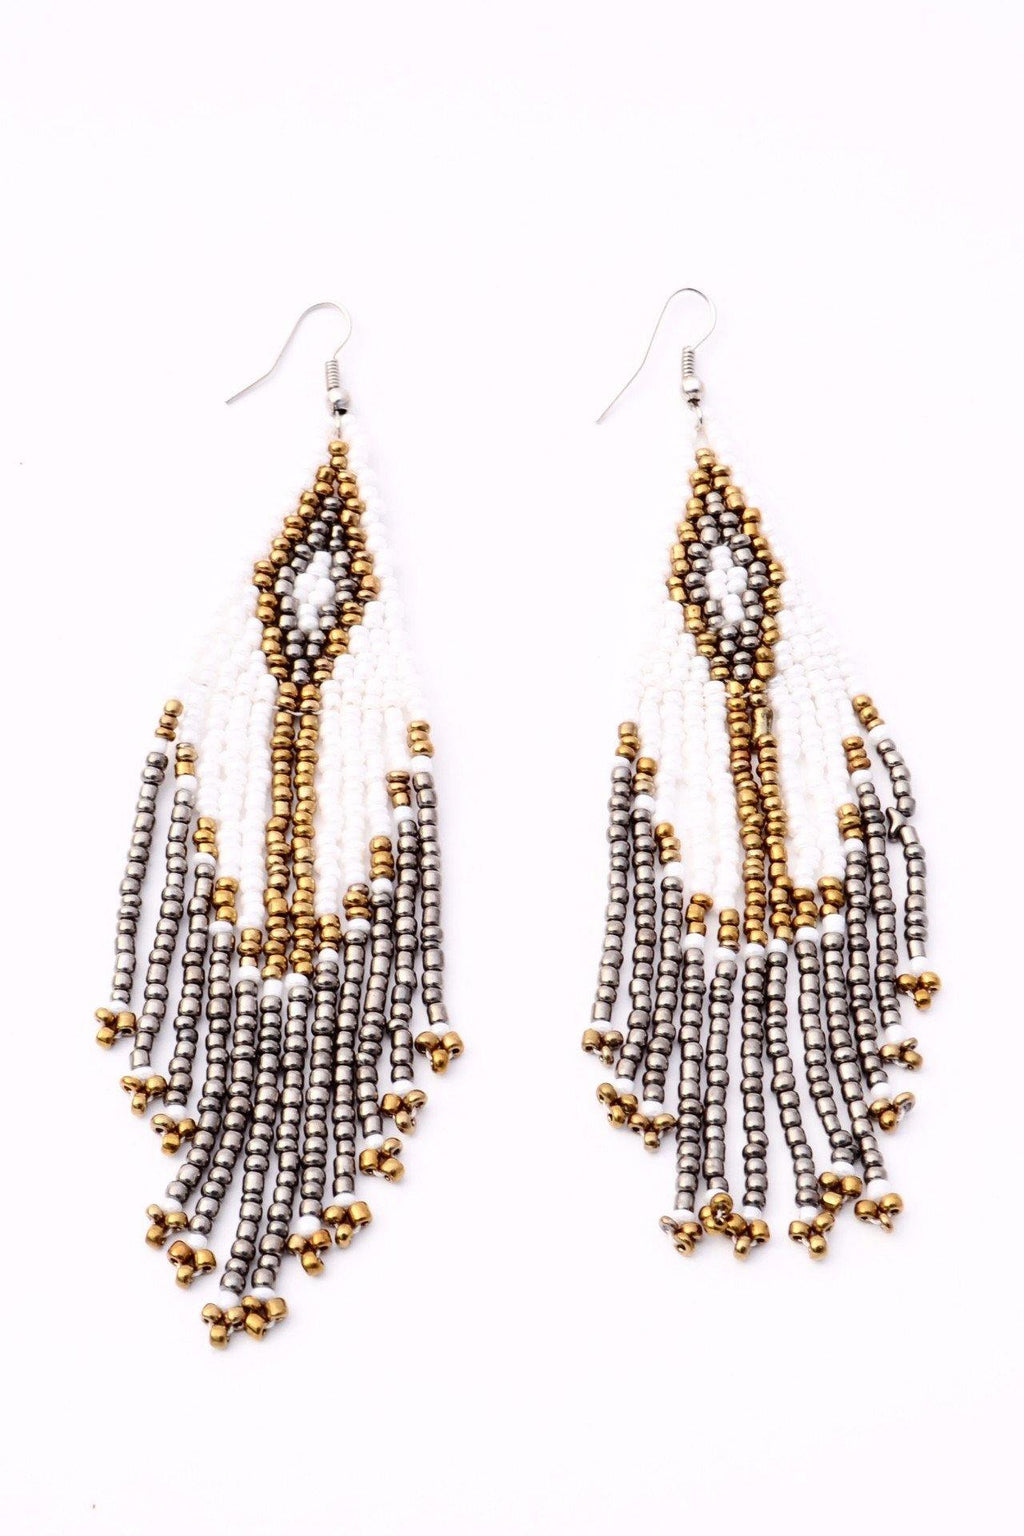 Boho Beaded Earrings - White | Gold | Smoke - Filosophy